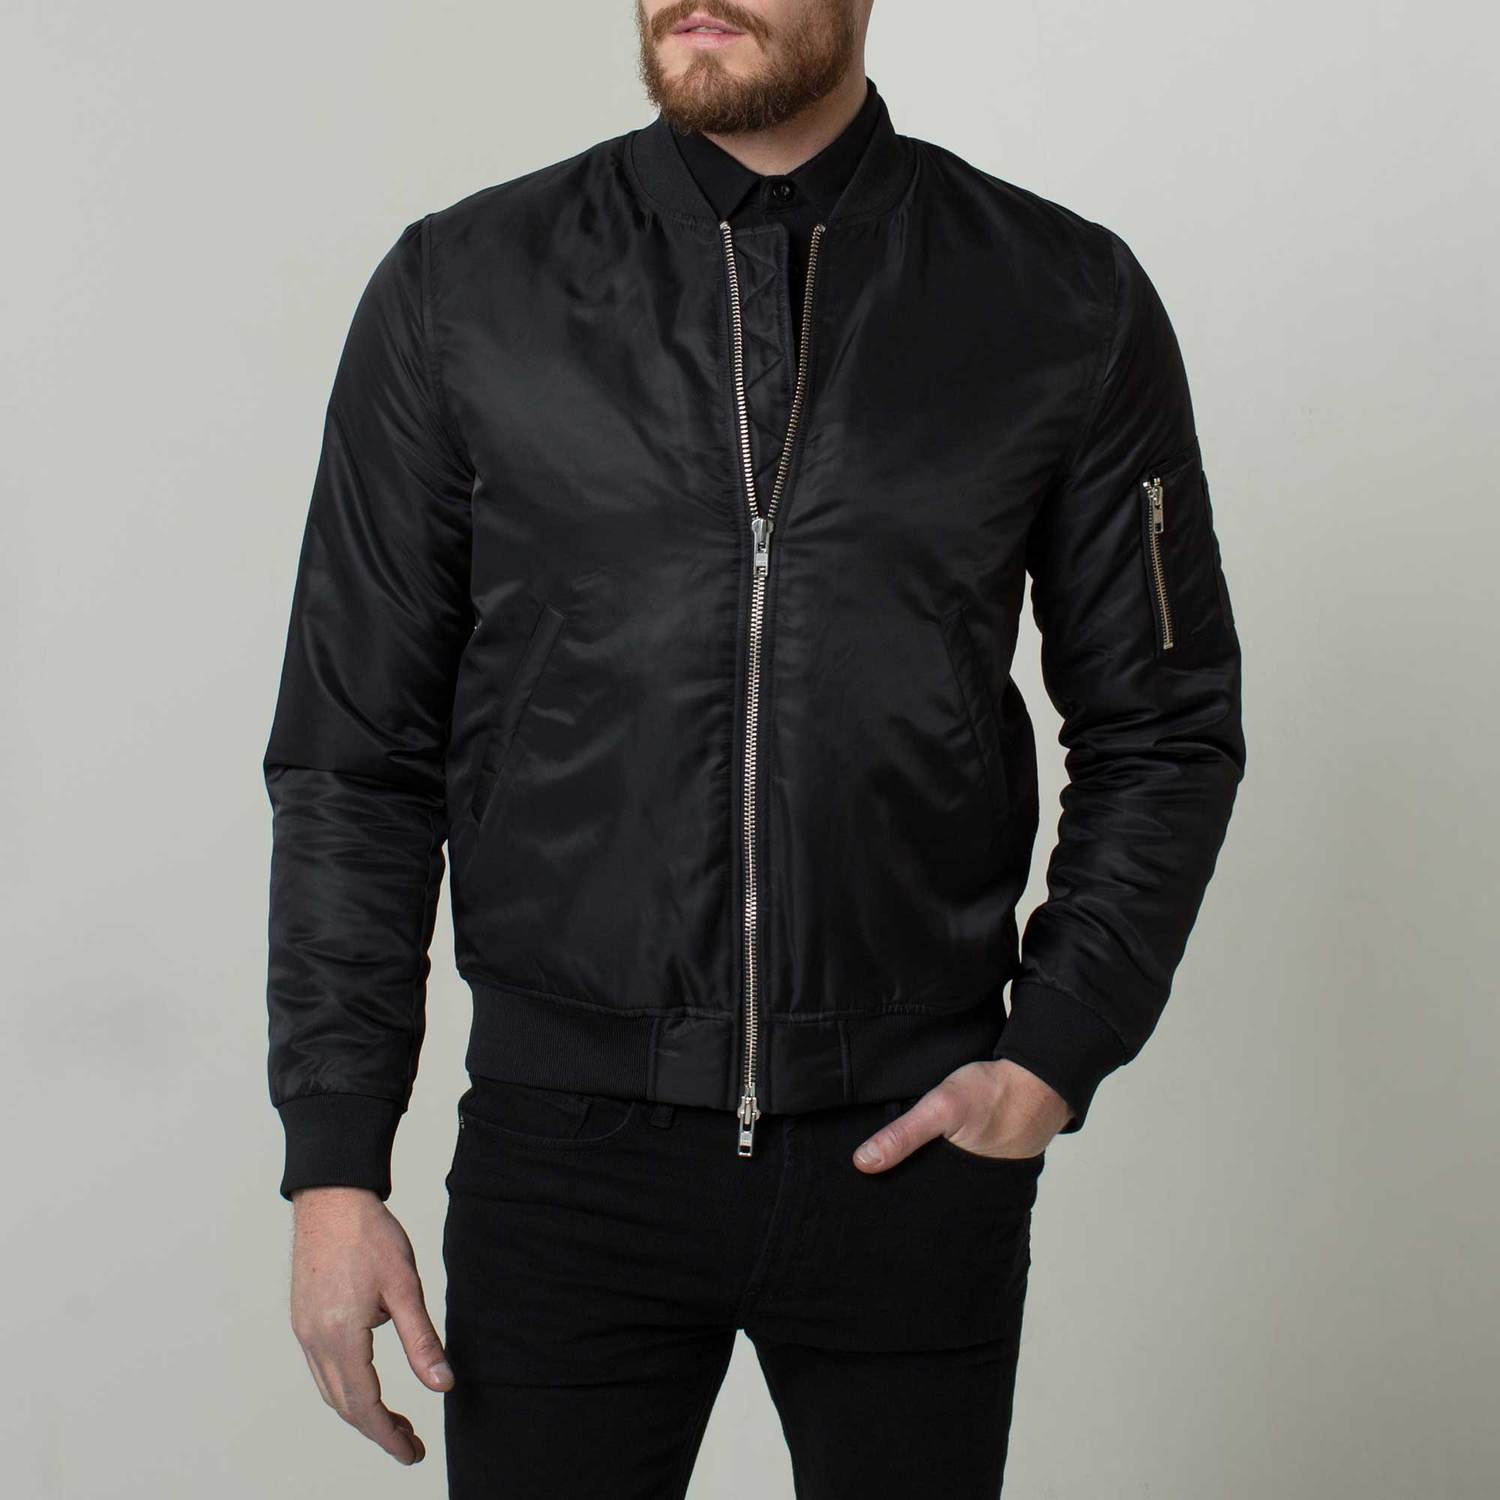 Mens Nylon Bomber Jacket With Silver Zippers In Black 145